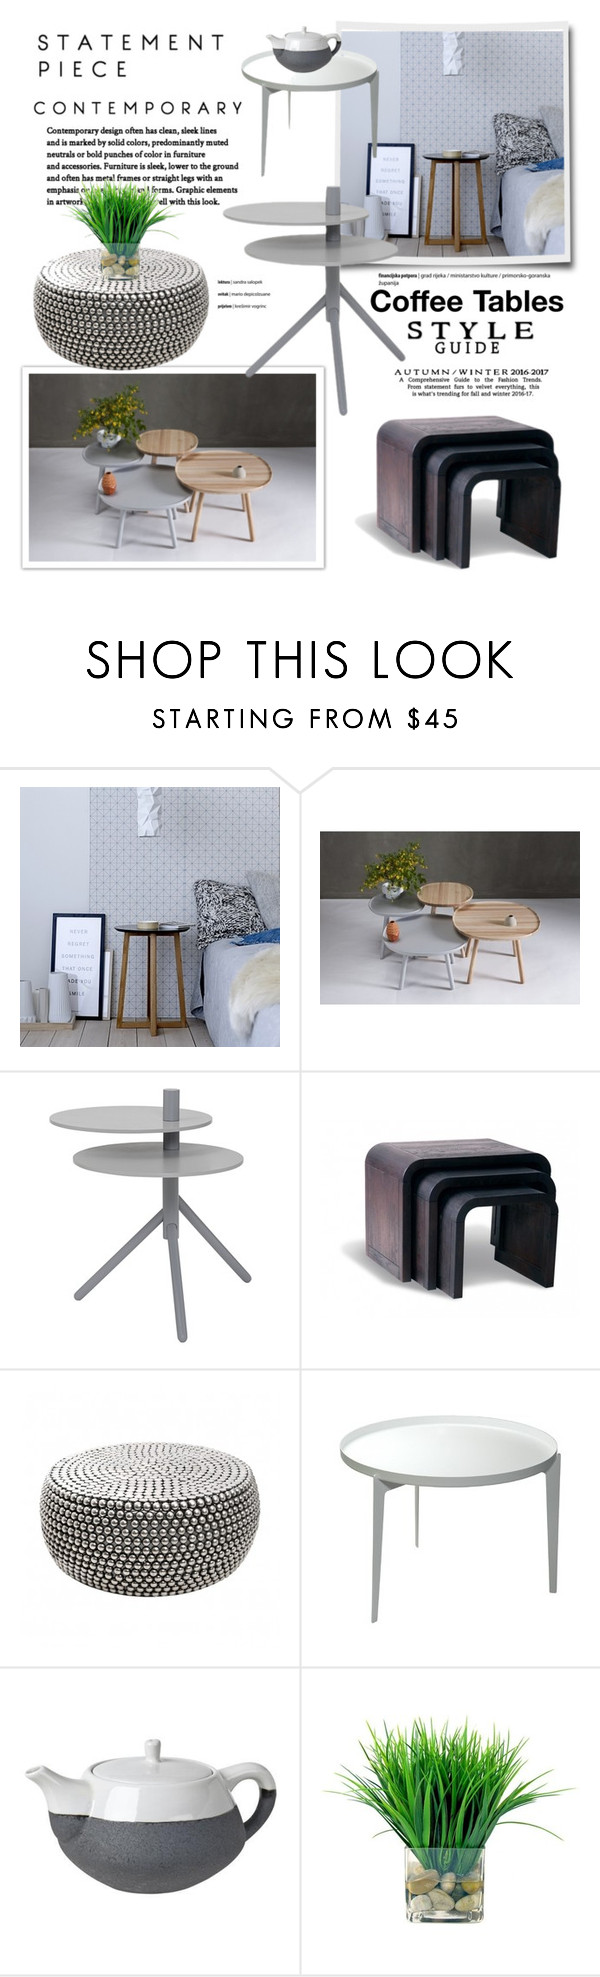 """""""Statement Piece: Coffee Table"""" by cruzeirodotejo ❤ liked on Polyvore featuring interior, interiors, interior design, home, home decor, interior decorating, Bloomingville, Covo, Broste Copenhagen and Home"""